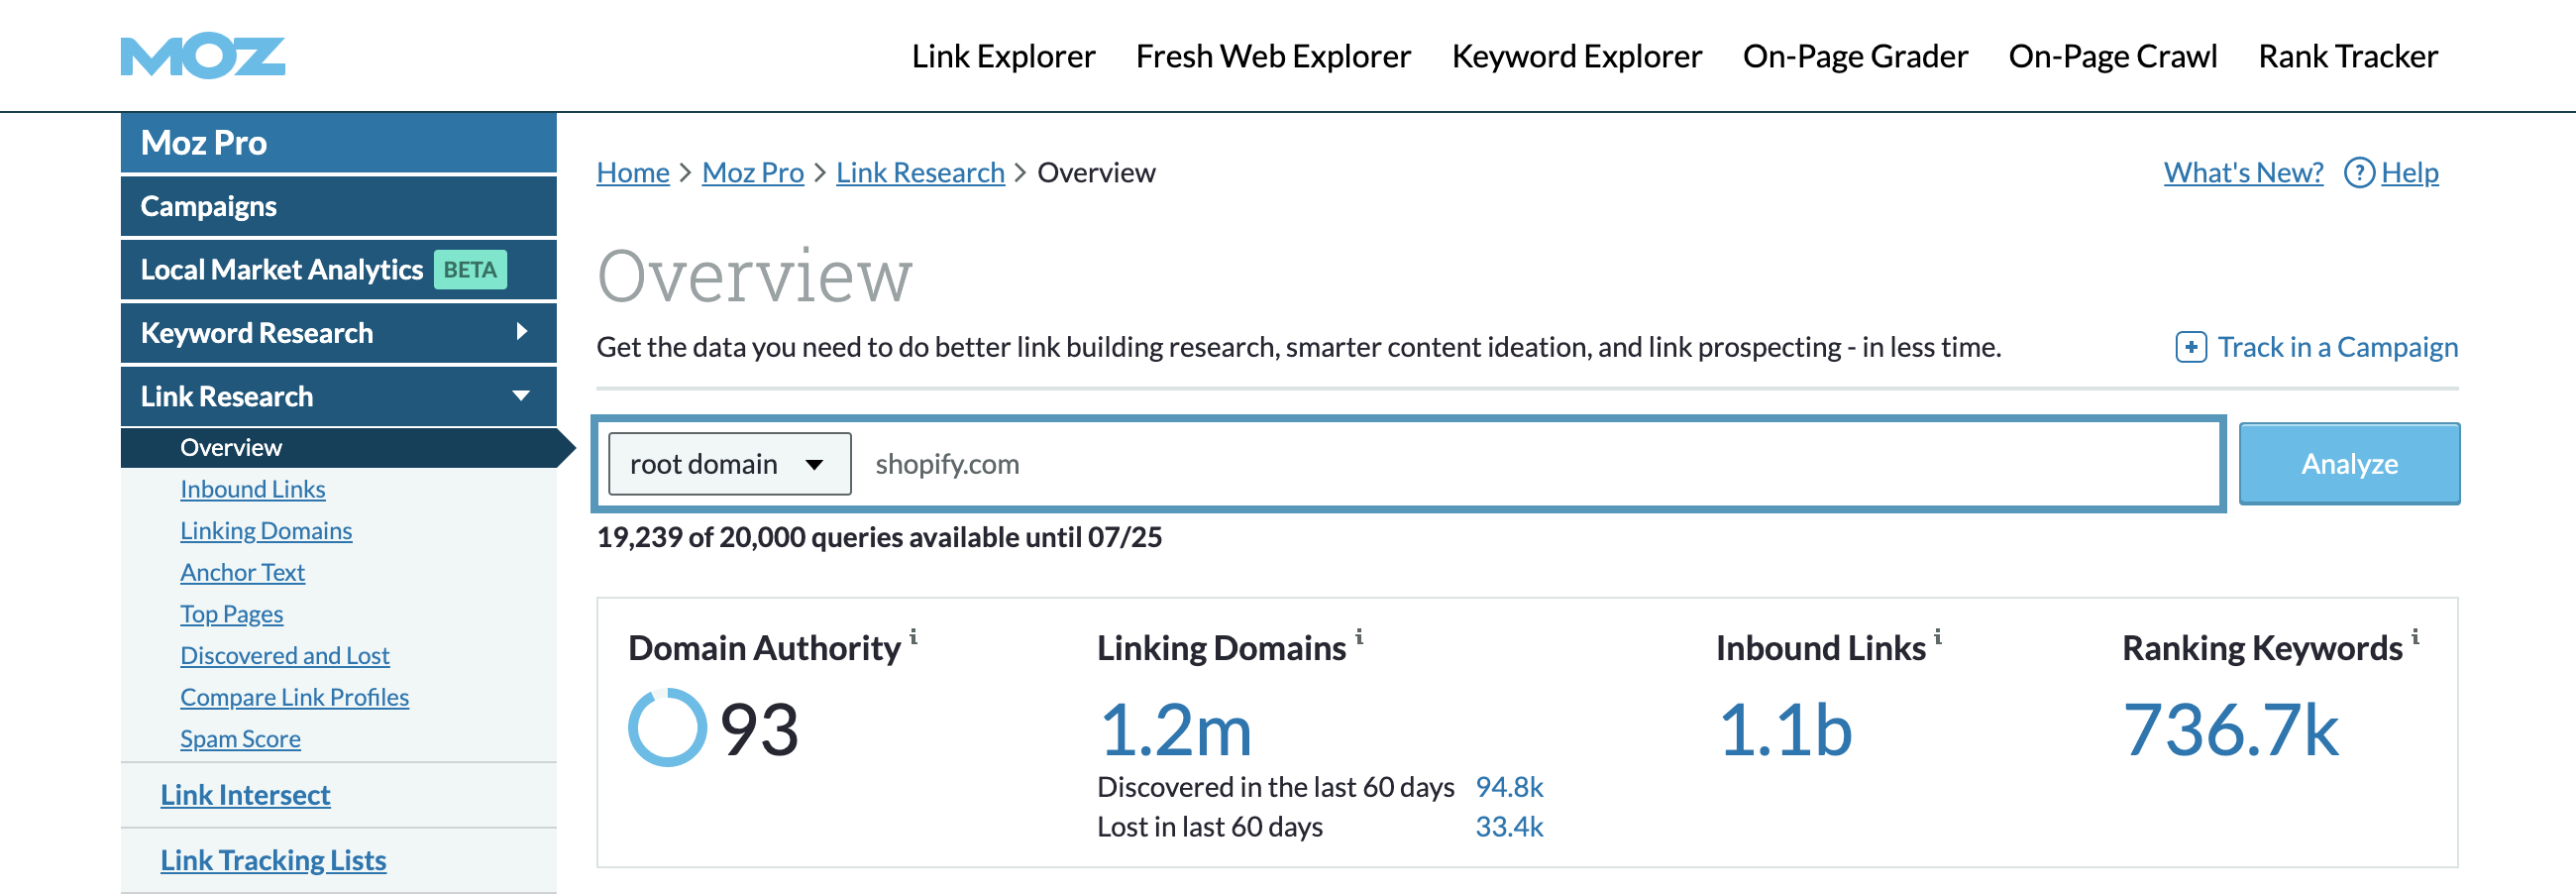 Moz Link Research Overview